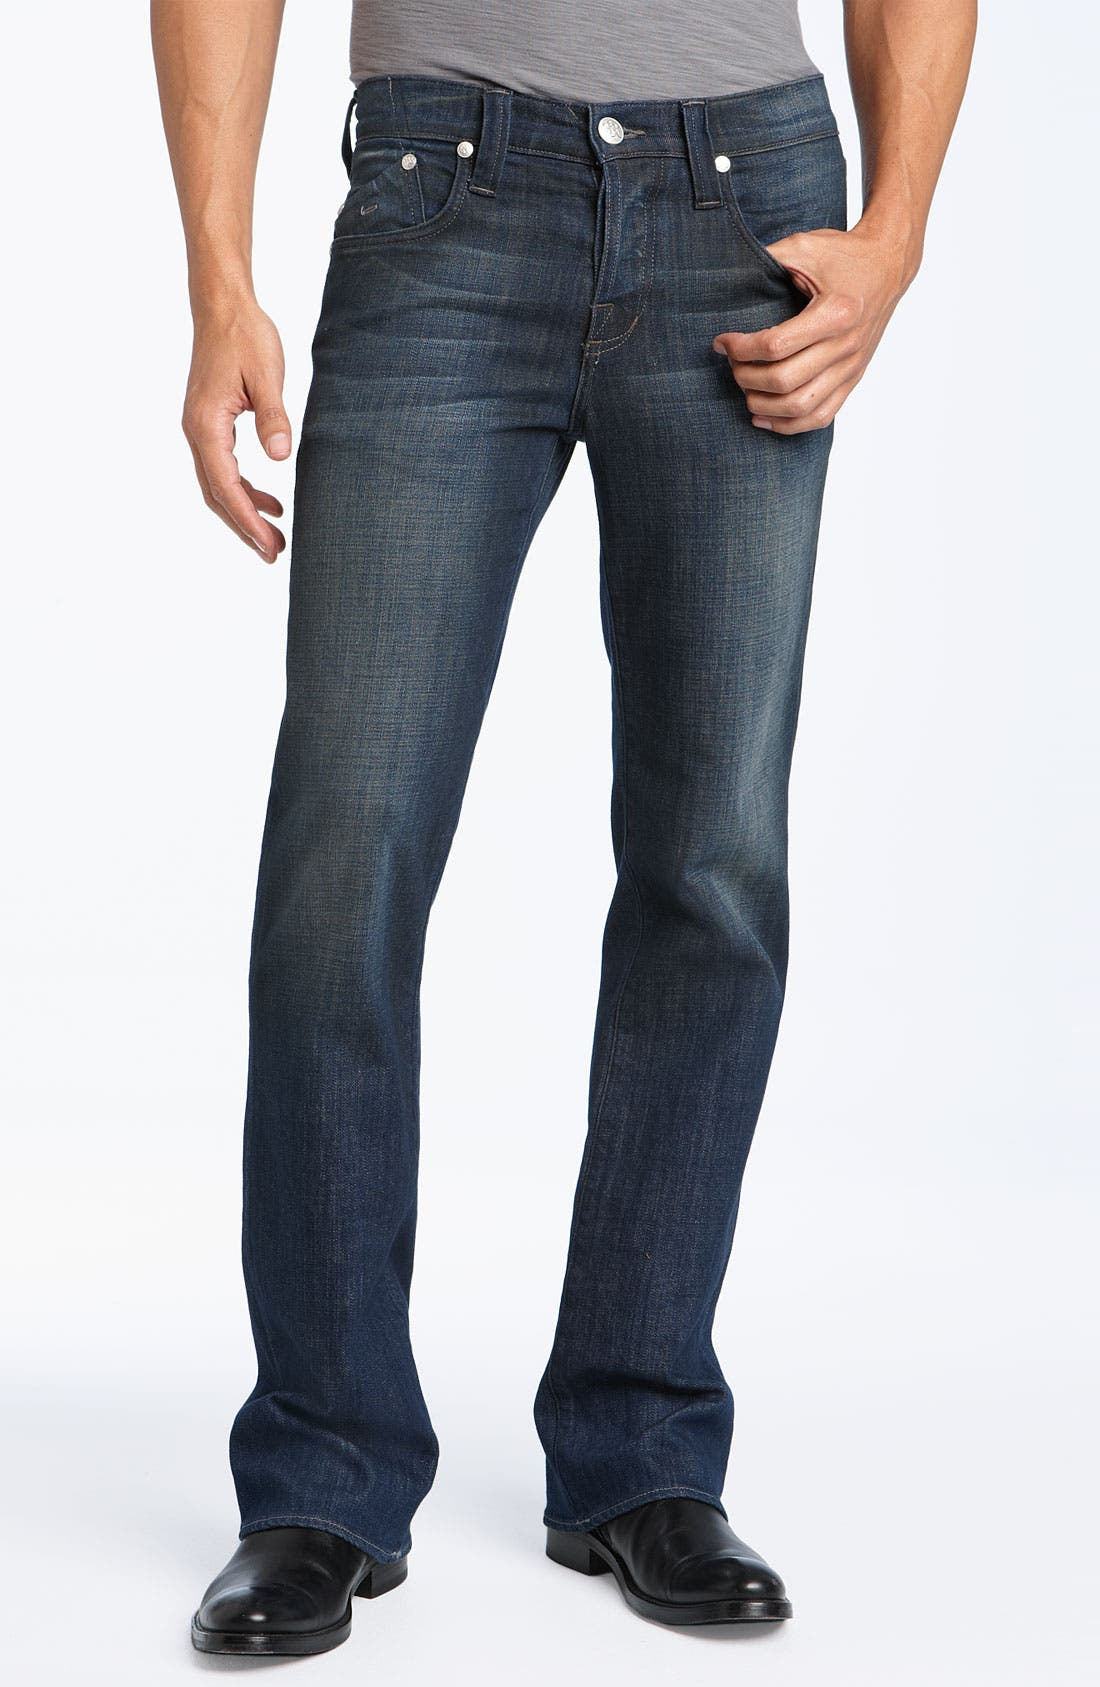 'Floyd' Relaxed Bootcut Jeans,                             Alternate thumbnail 2, color,                             418